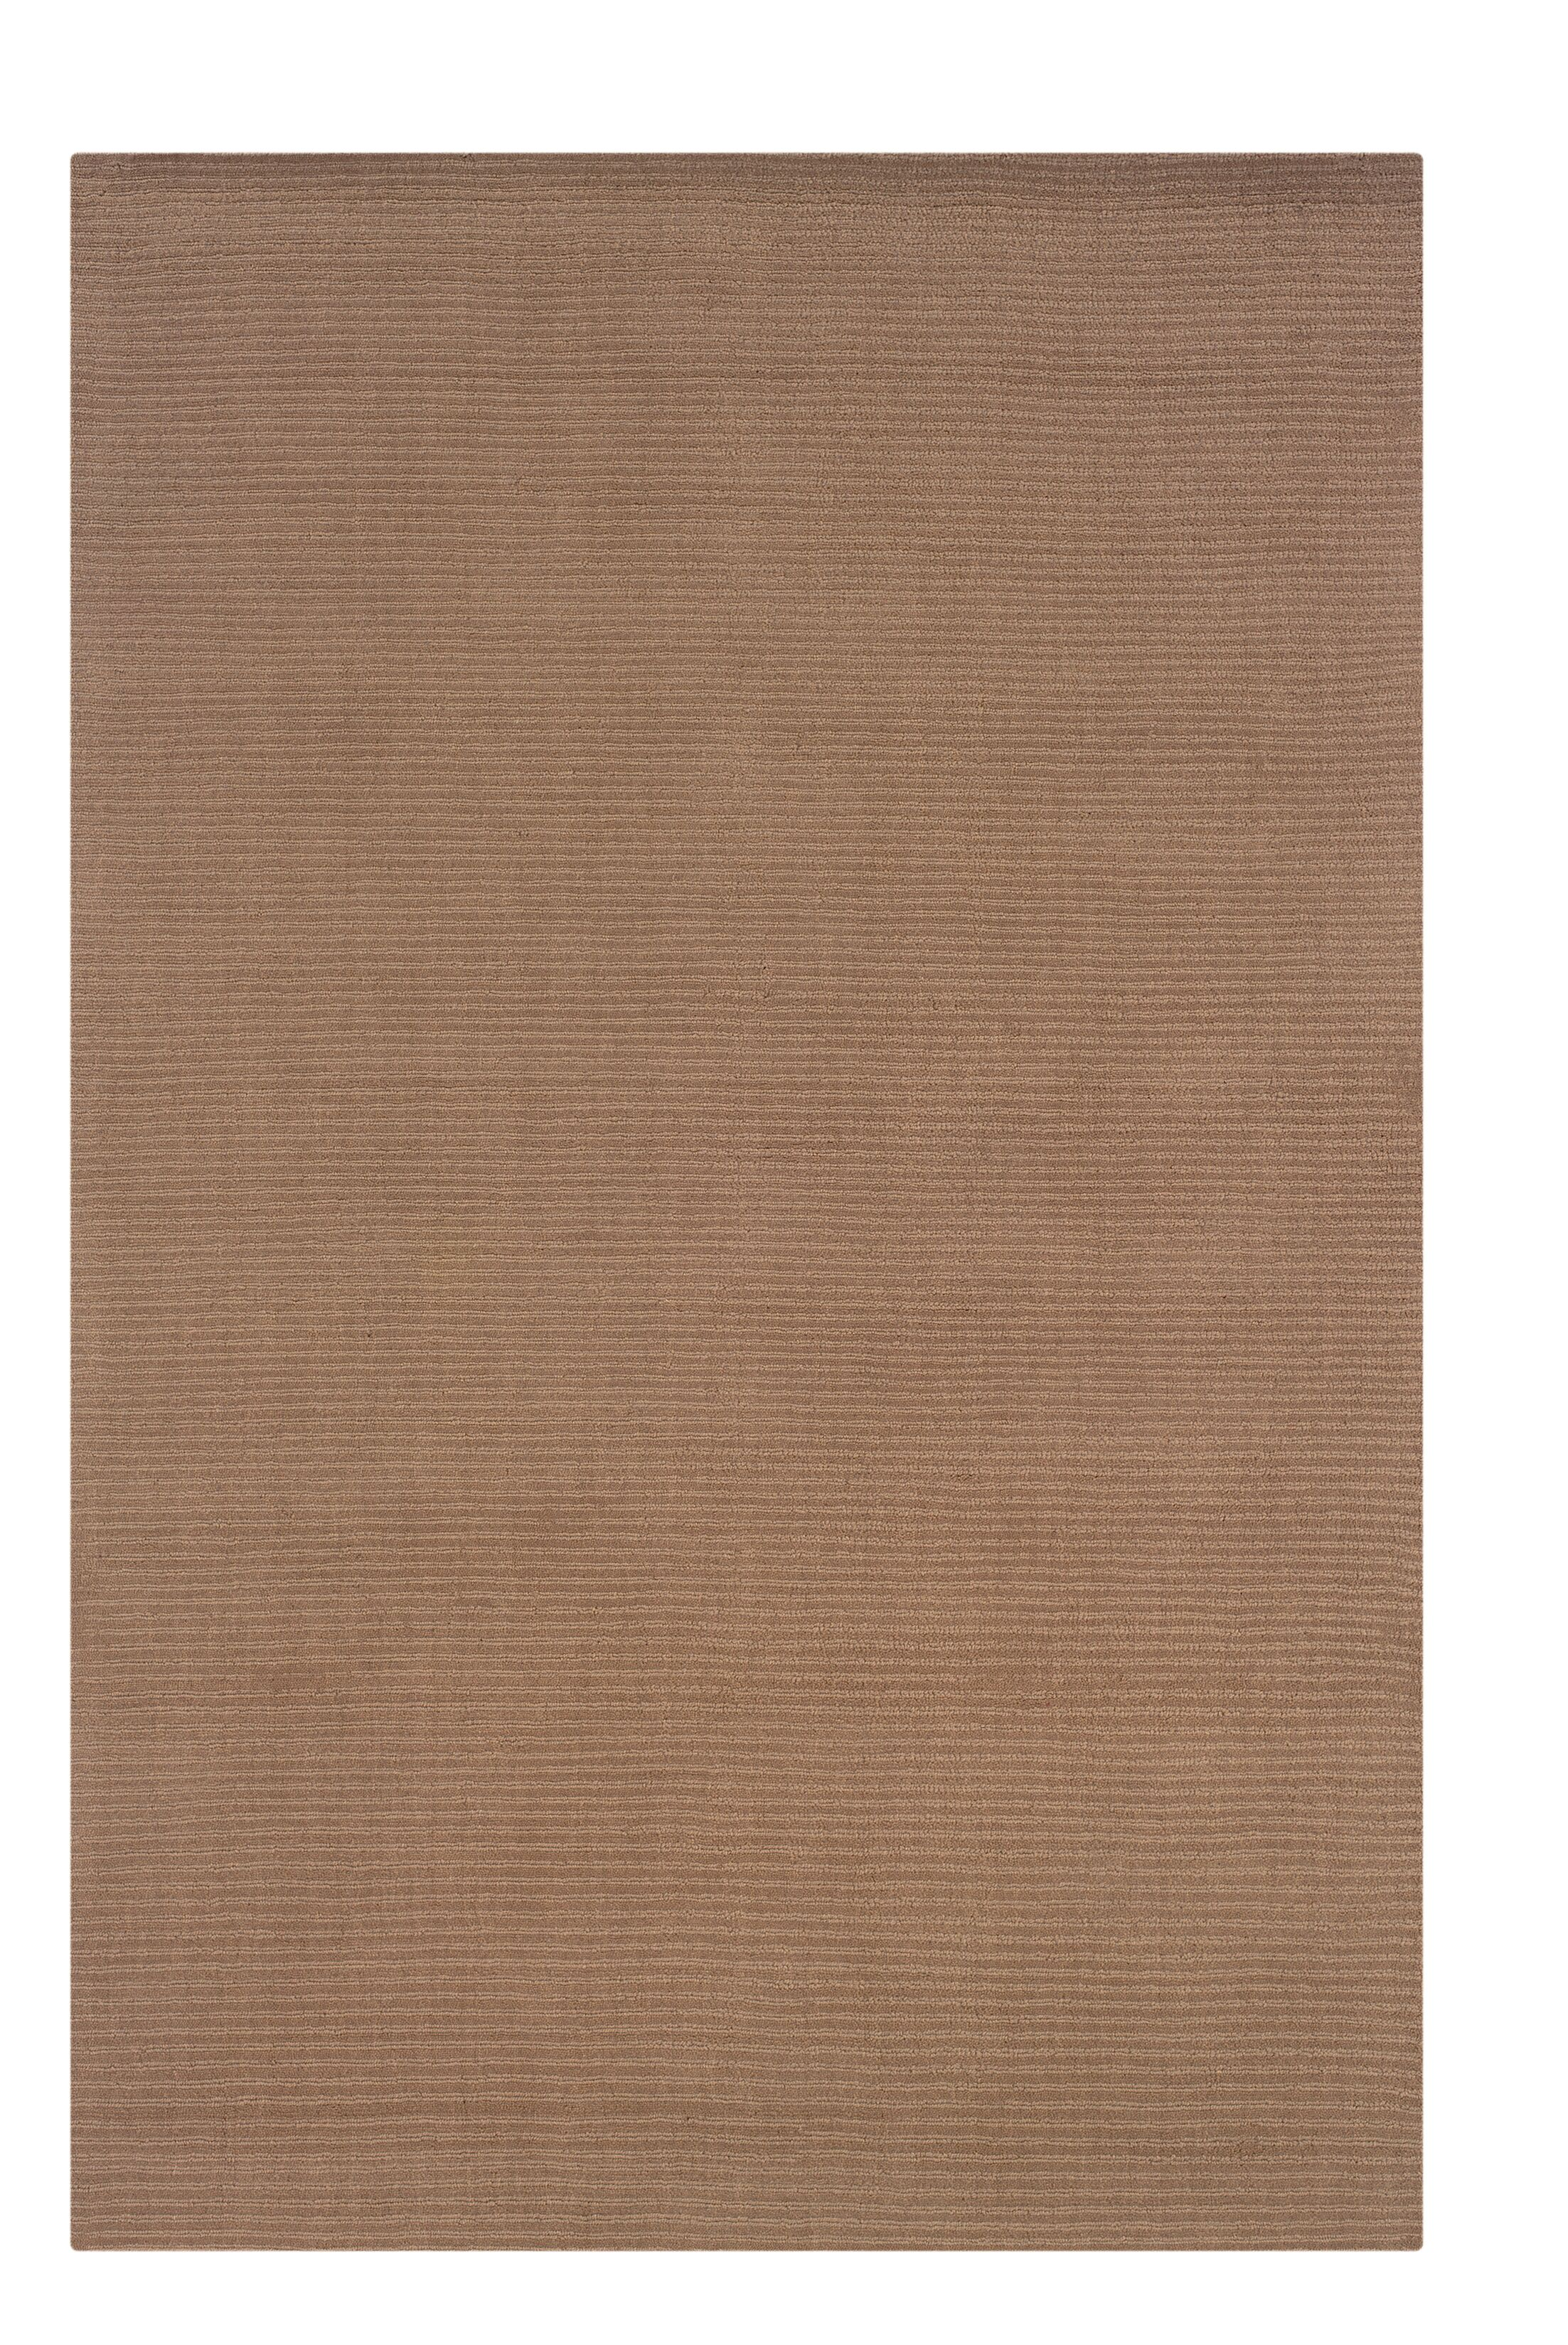 Hand-Woven Brown Area Rug Rug Size: Rectangle 8' x 10'1